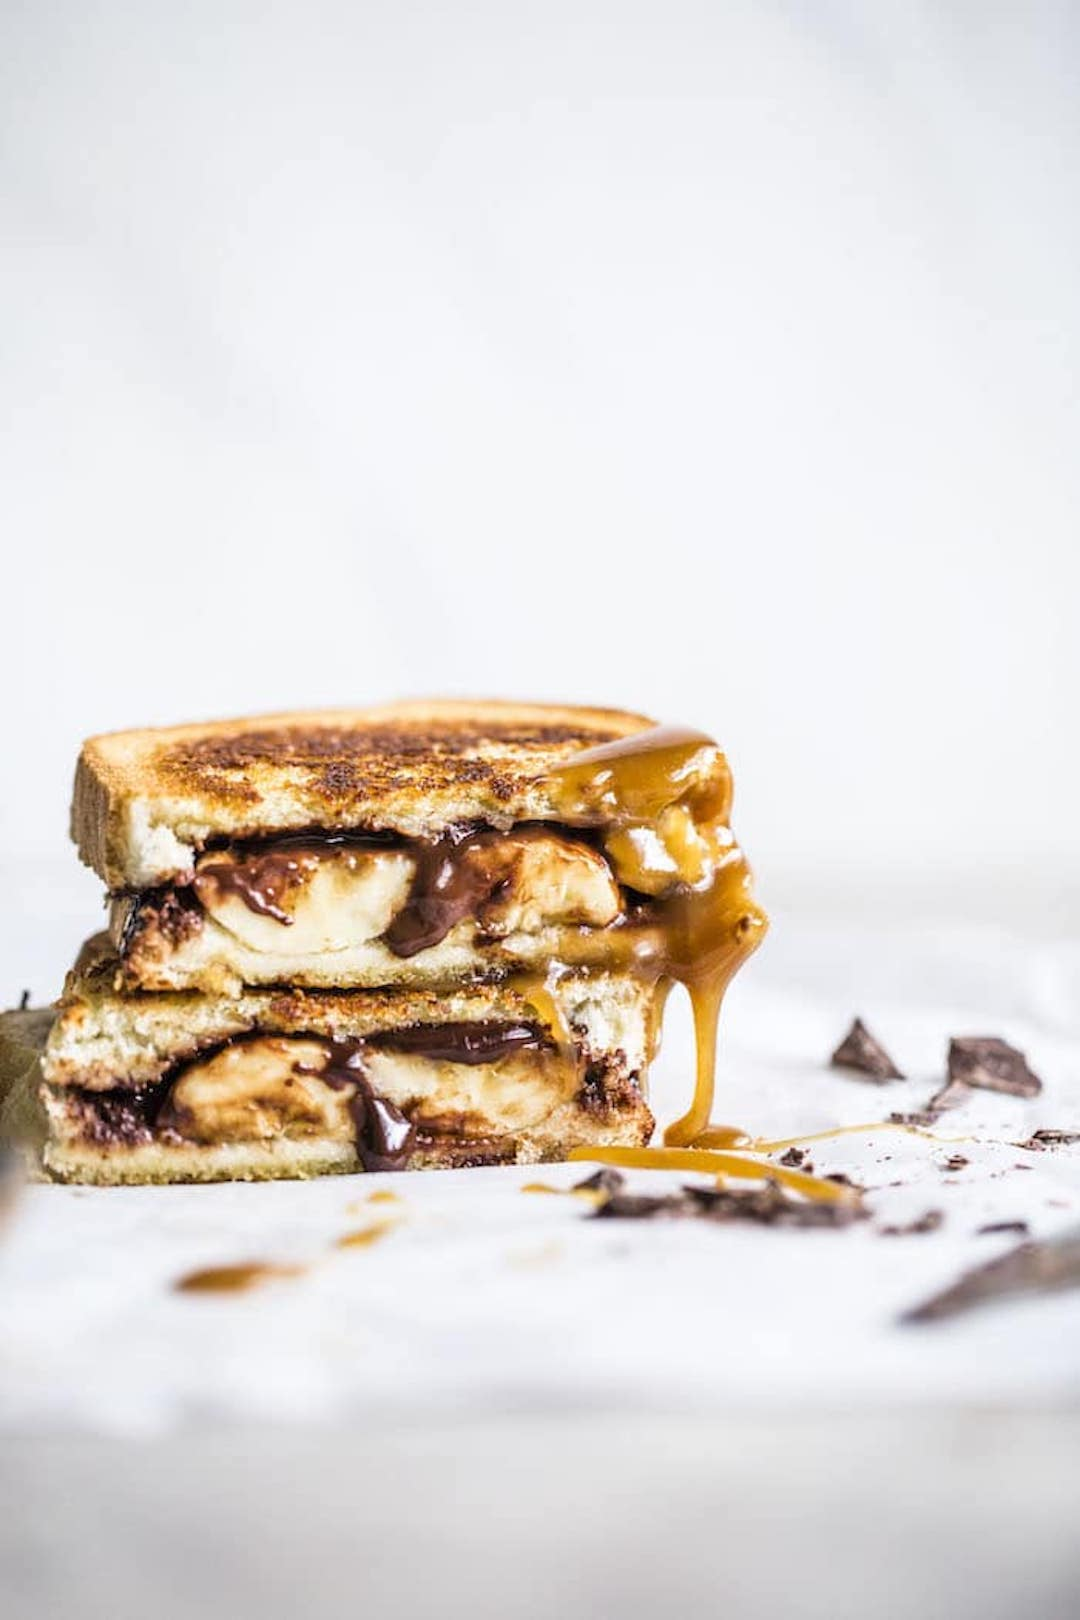 11 Yummy Plant Based Sandwiches - Vegan Chocolate Bananas Foster Sandwich from The Almond Eater